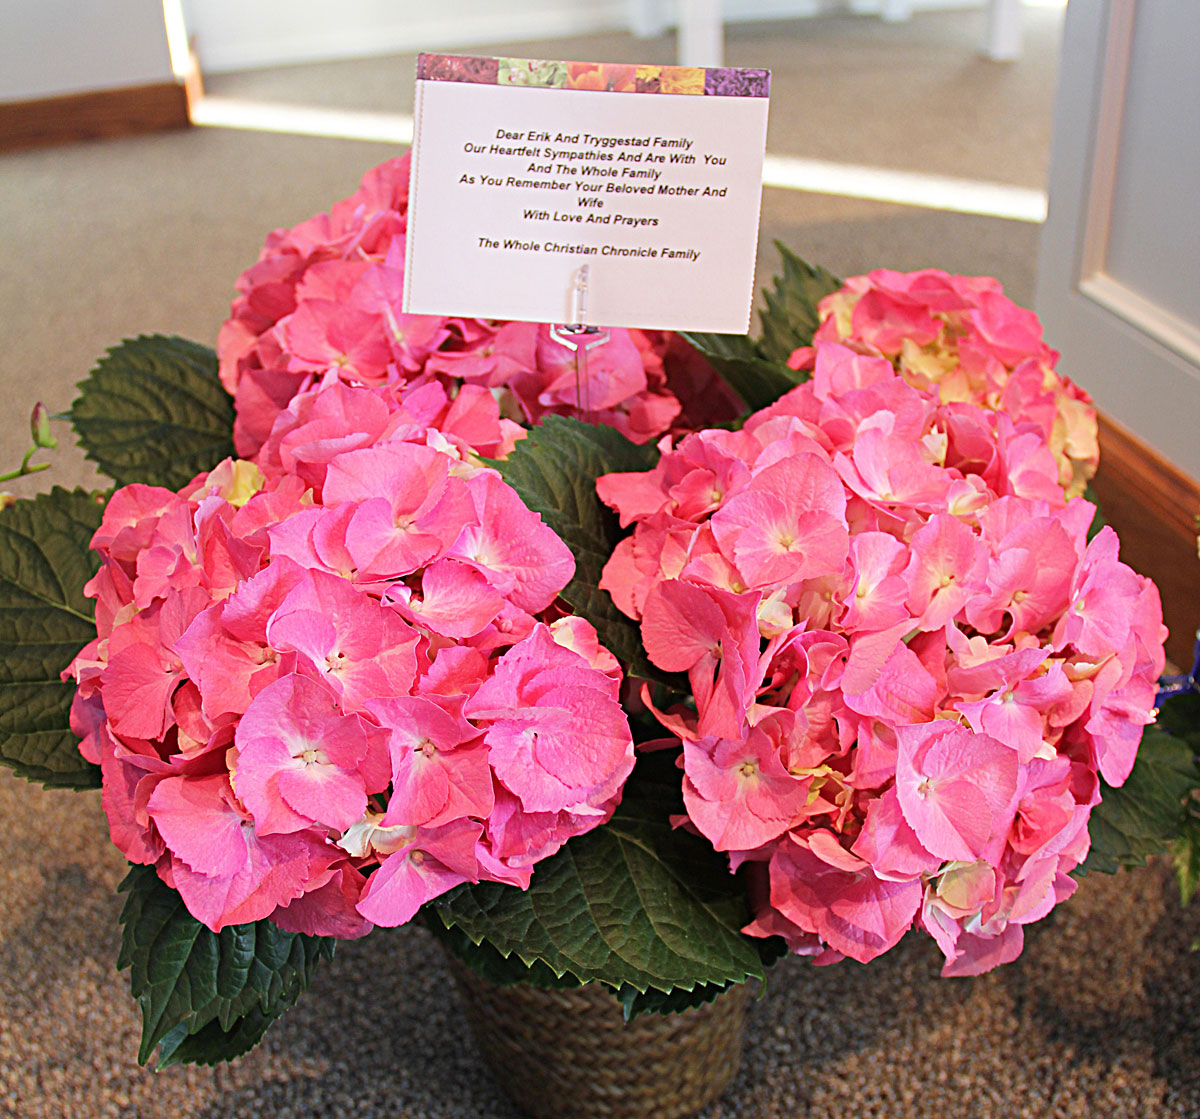 Flowers sent by The Christian Chronicle for Mom's memorial service. (Photo by Erik Tryggestad)